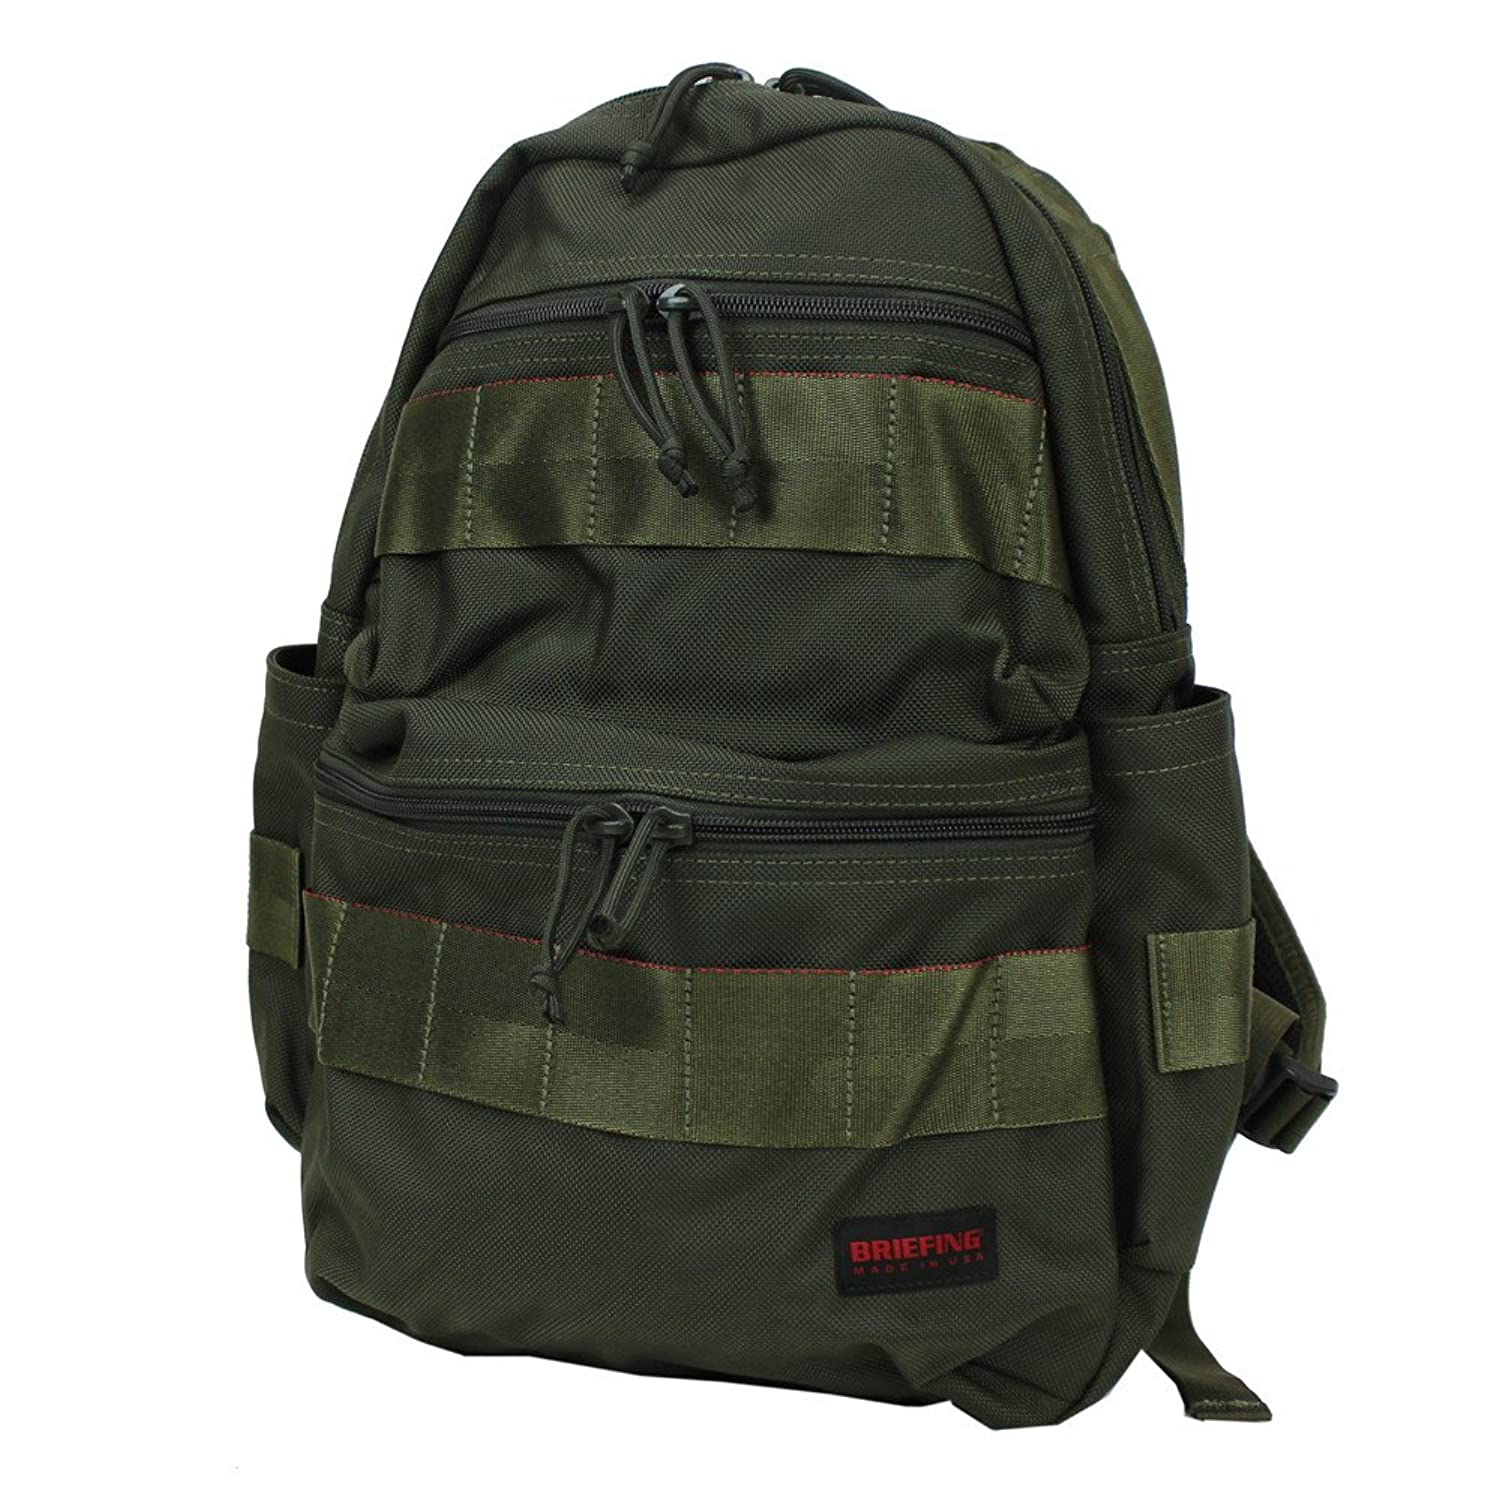 BRIEFING ブリーフィング MADE IN USA MADE IN USA リュックサック BRF136219 B07892X47Rレンジャーグリーン